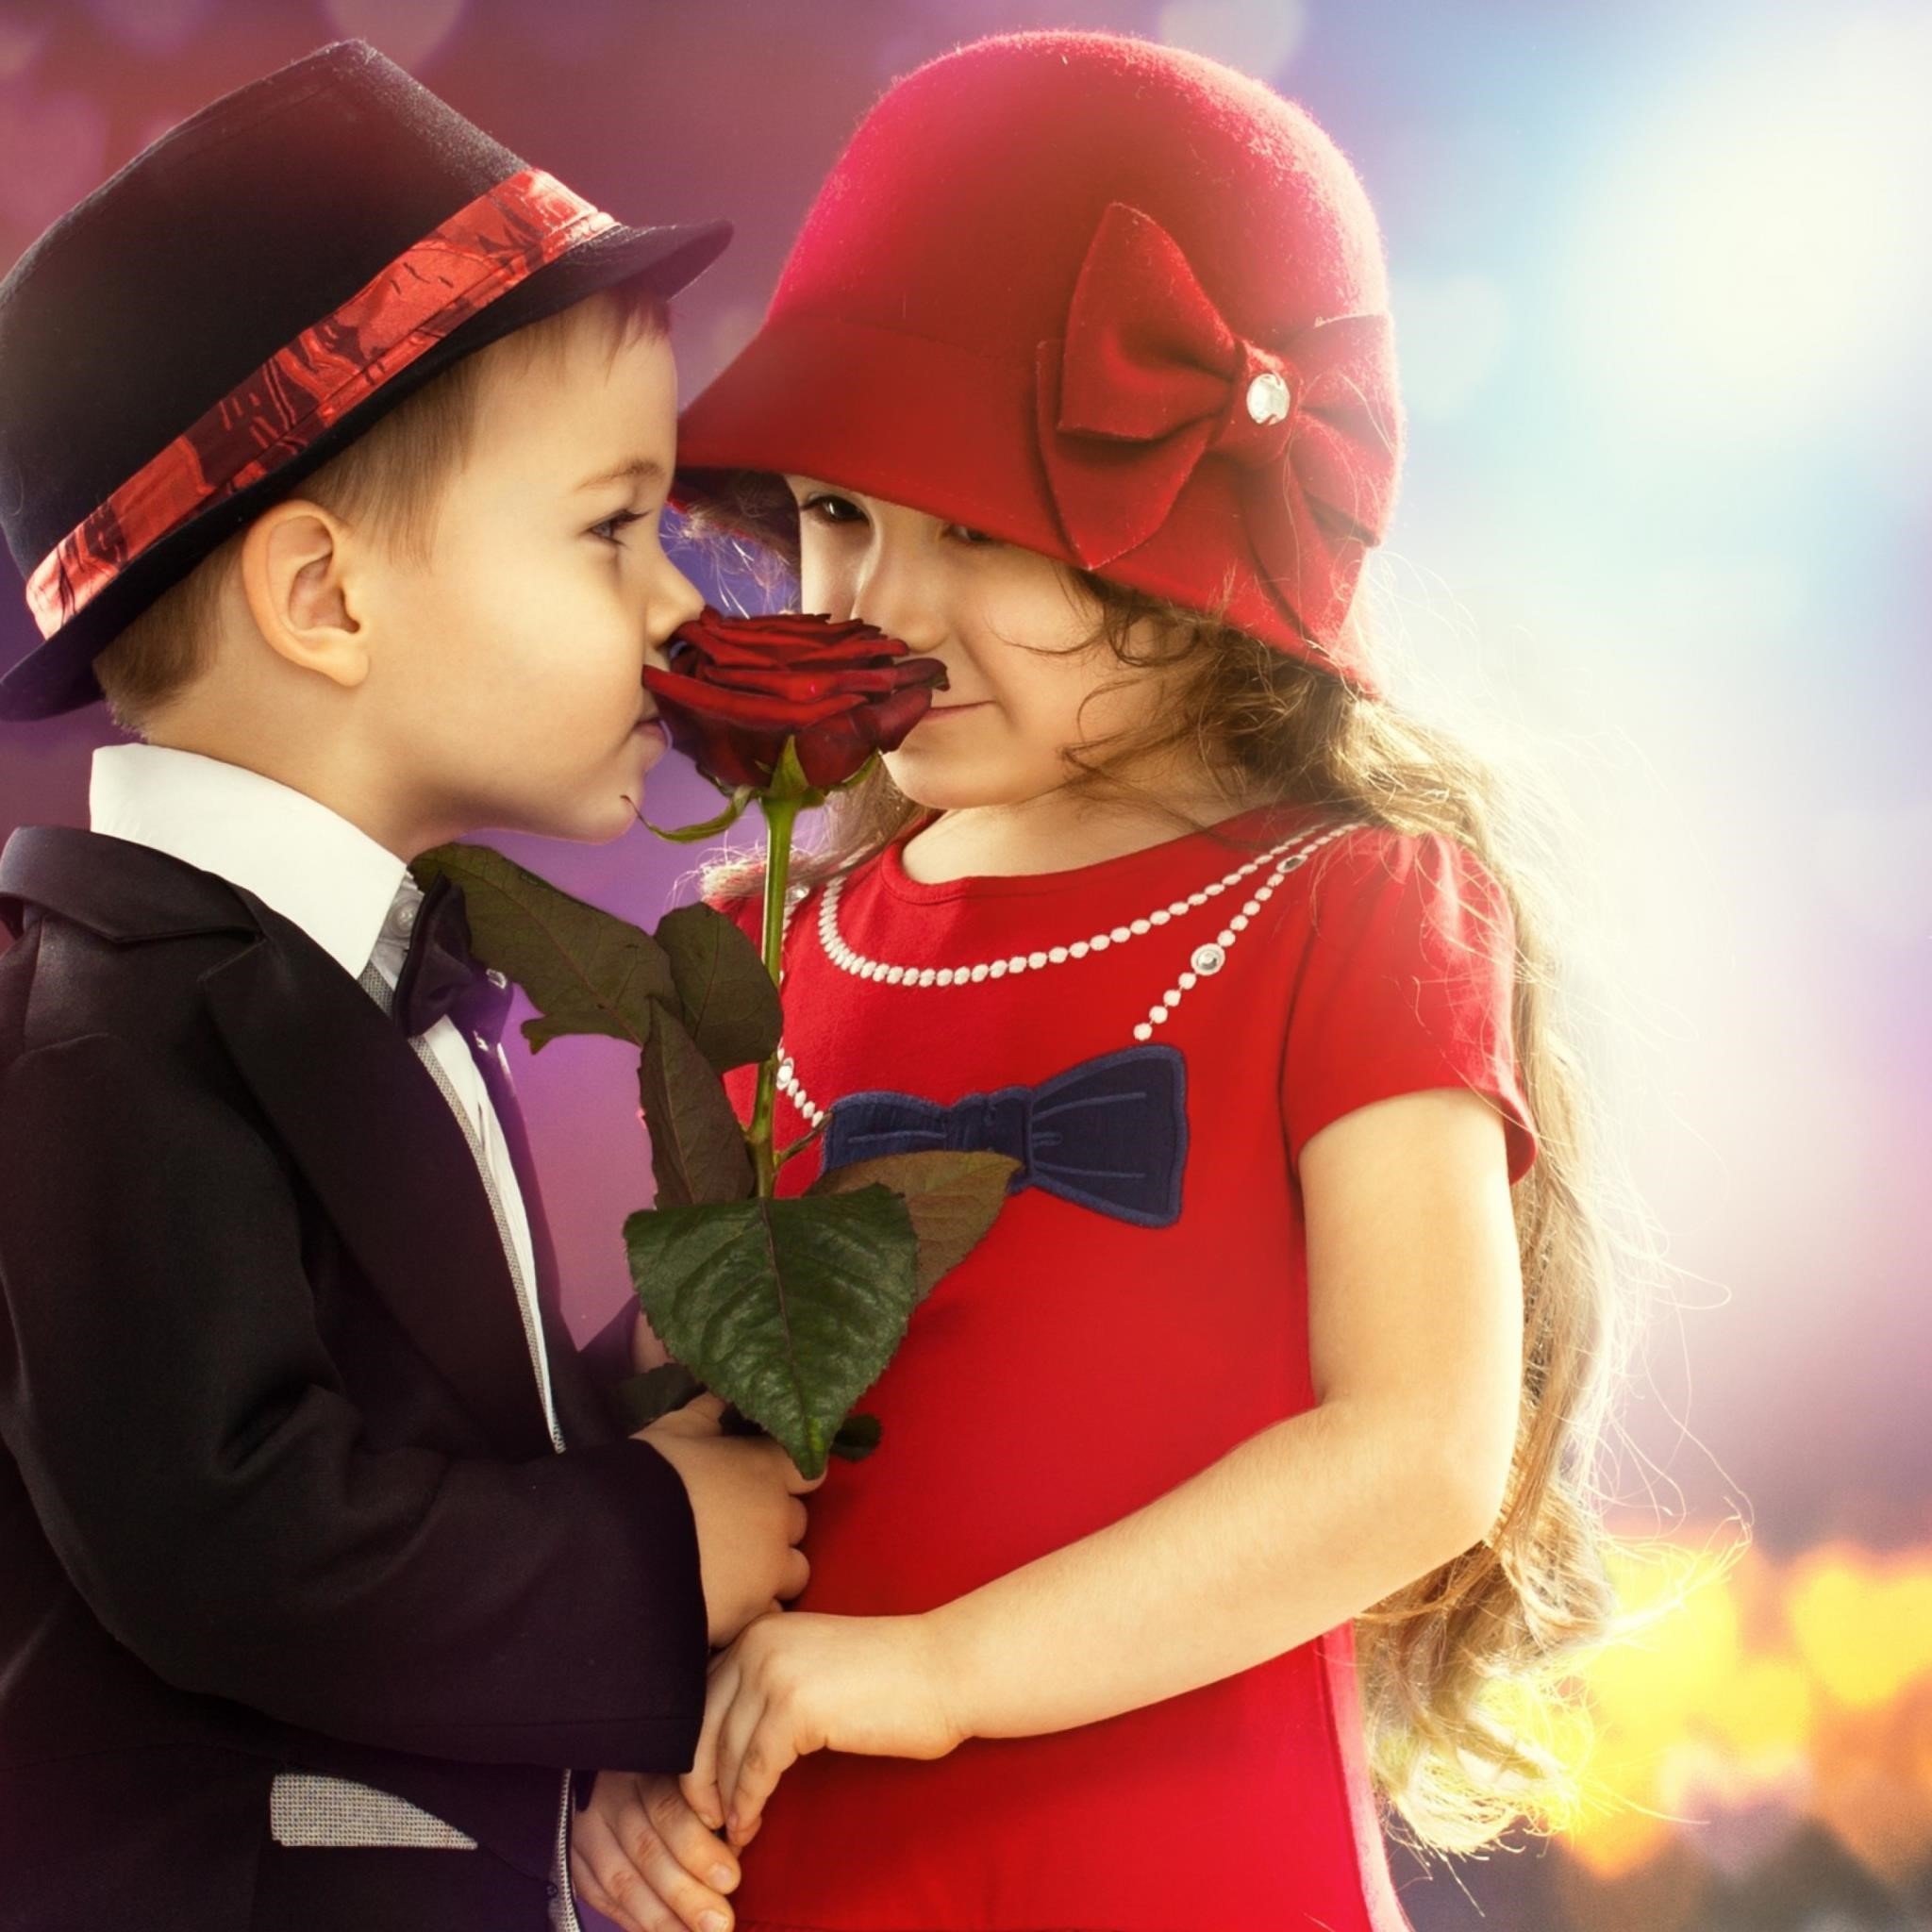 Cute Child Couple Wallpaper Rich Image And Wallpaper